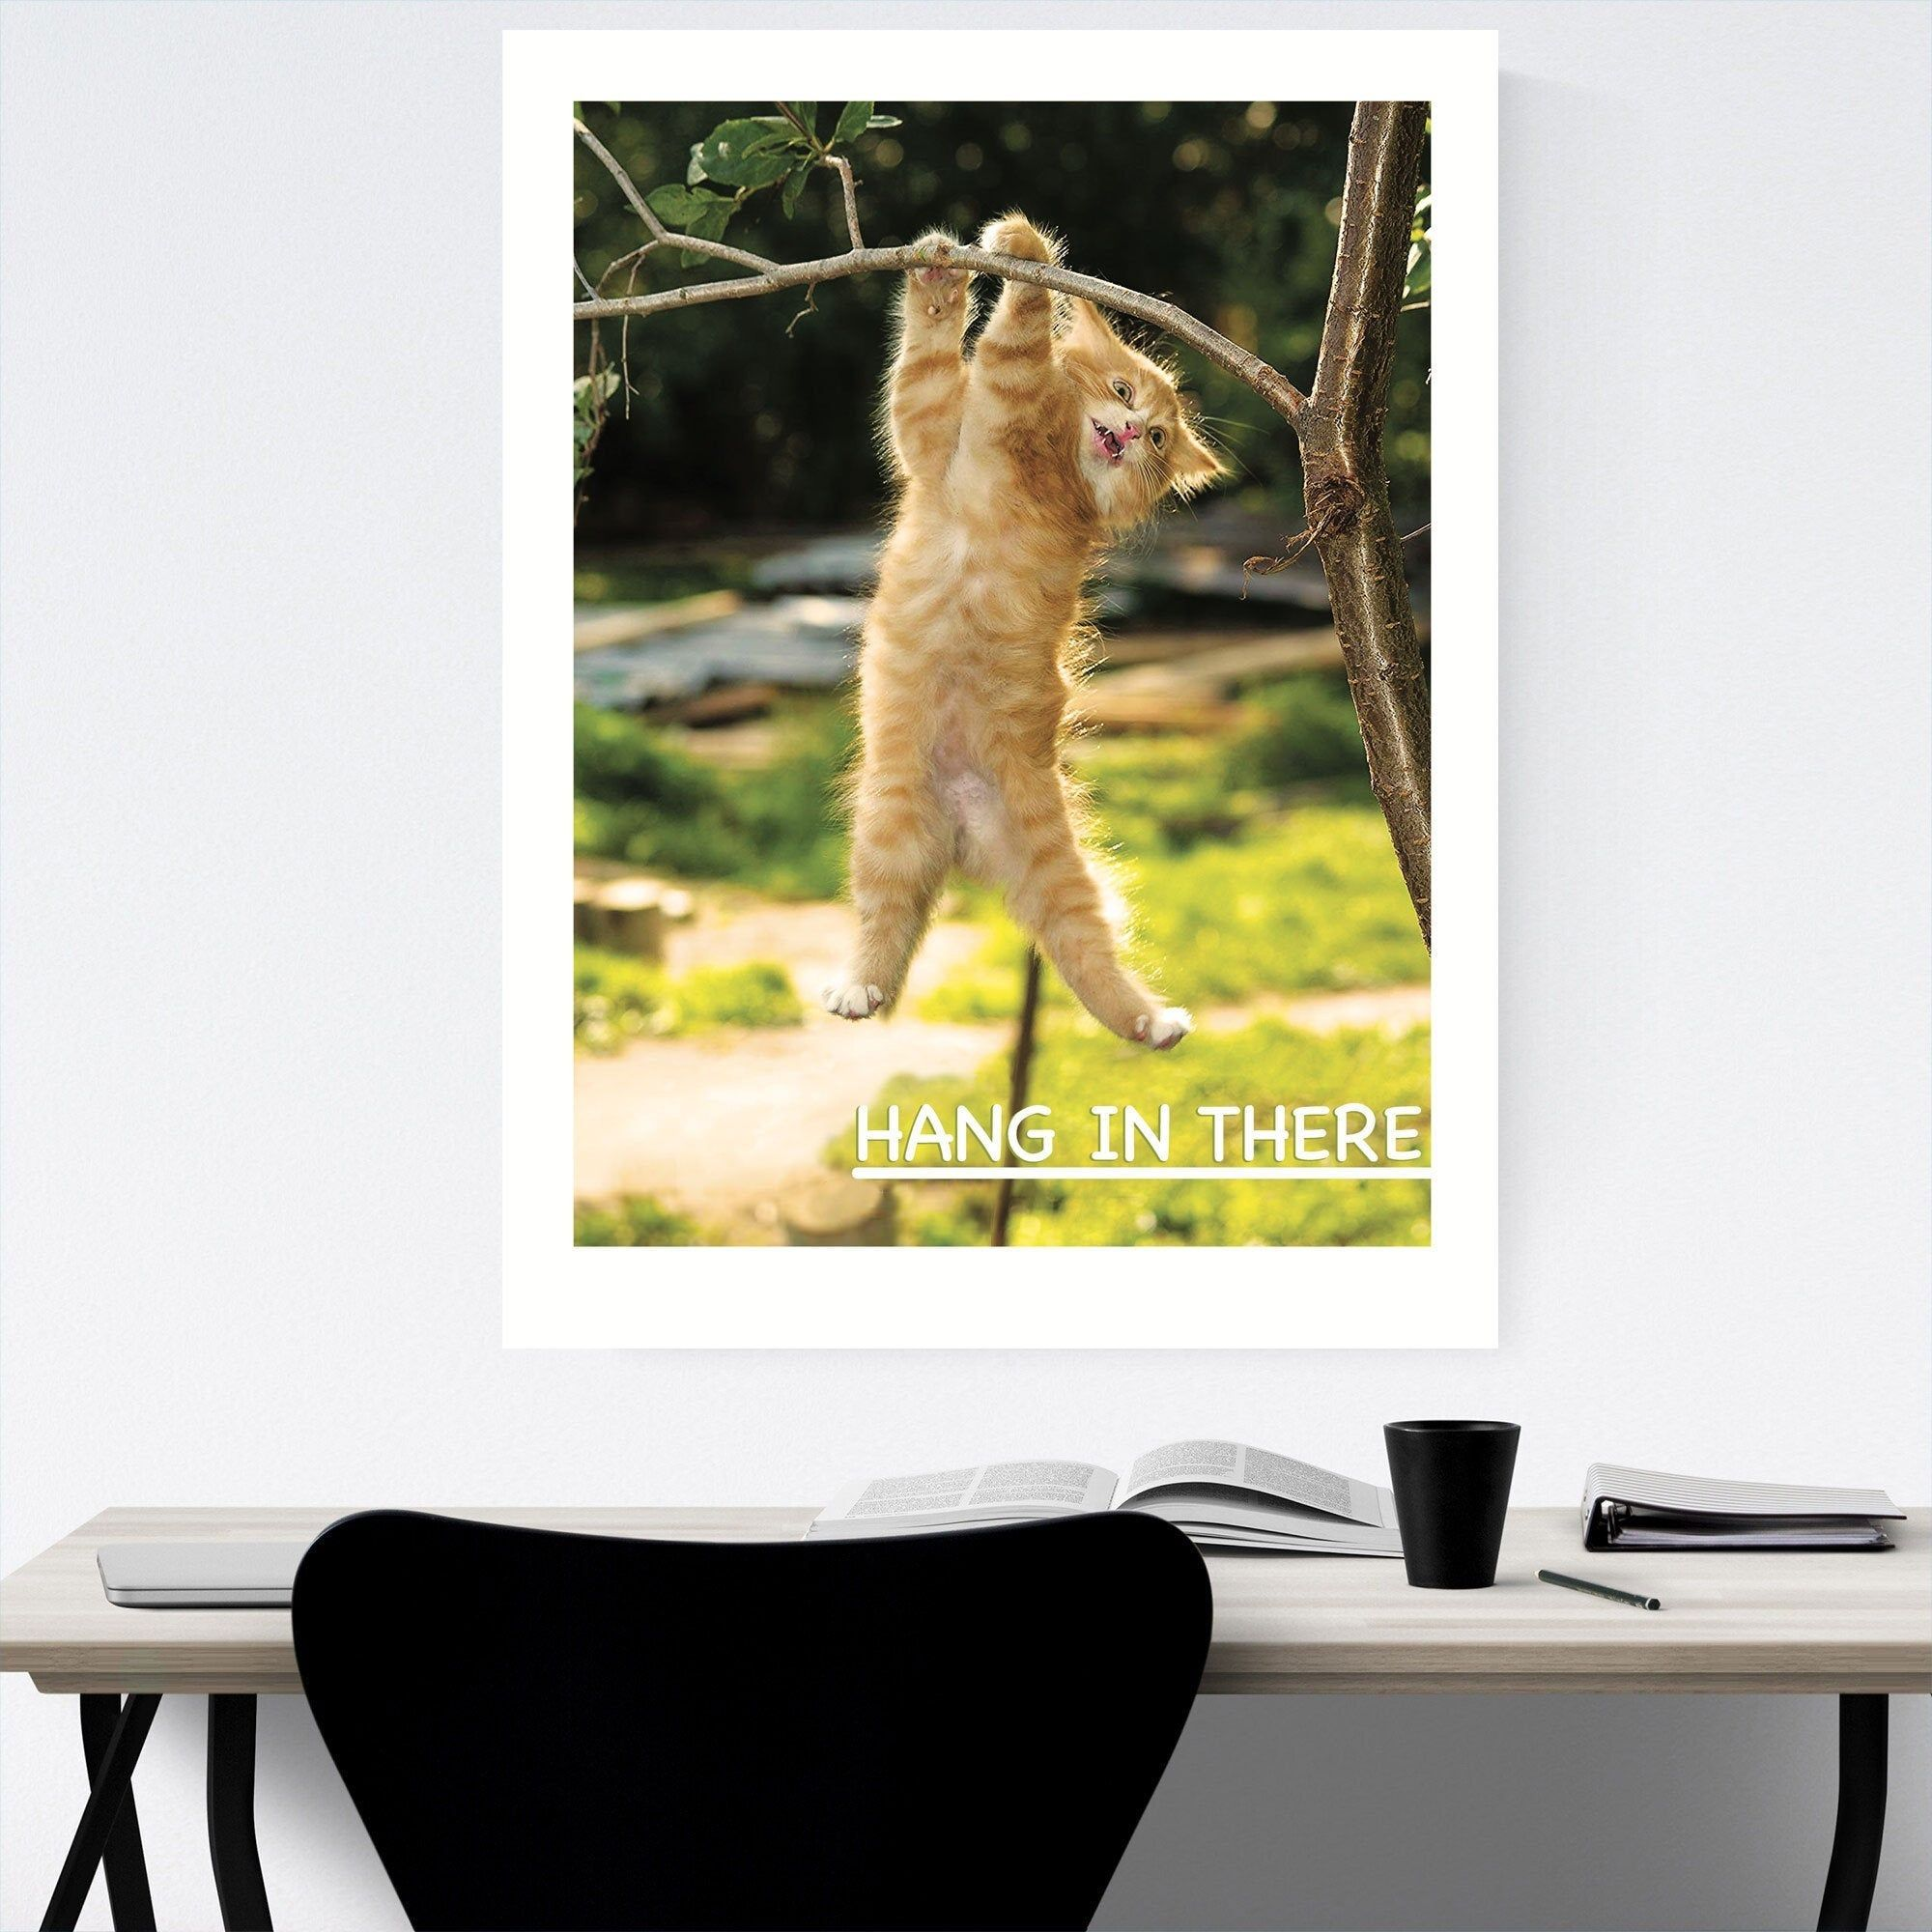 Hang In There Kitten Poster The Office Wall Art Cute Office Etsy In 2020 Office Wall Art Cute Office Decor Cute Office